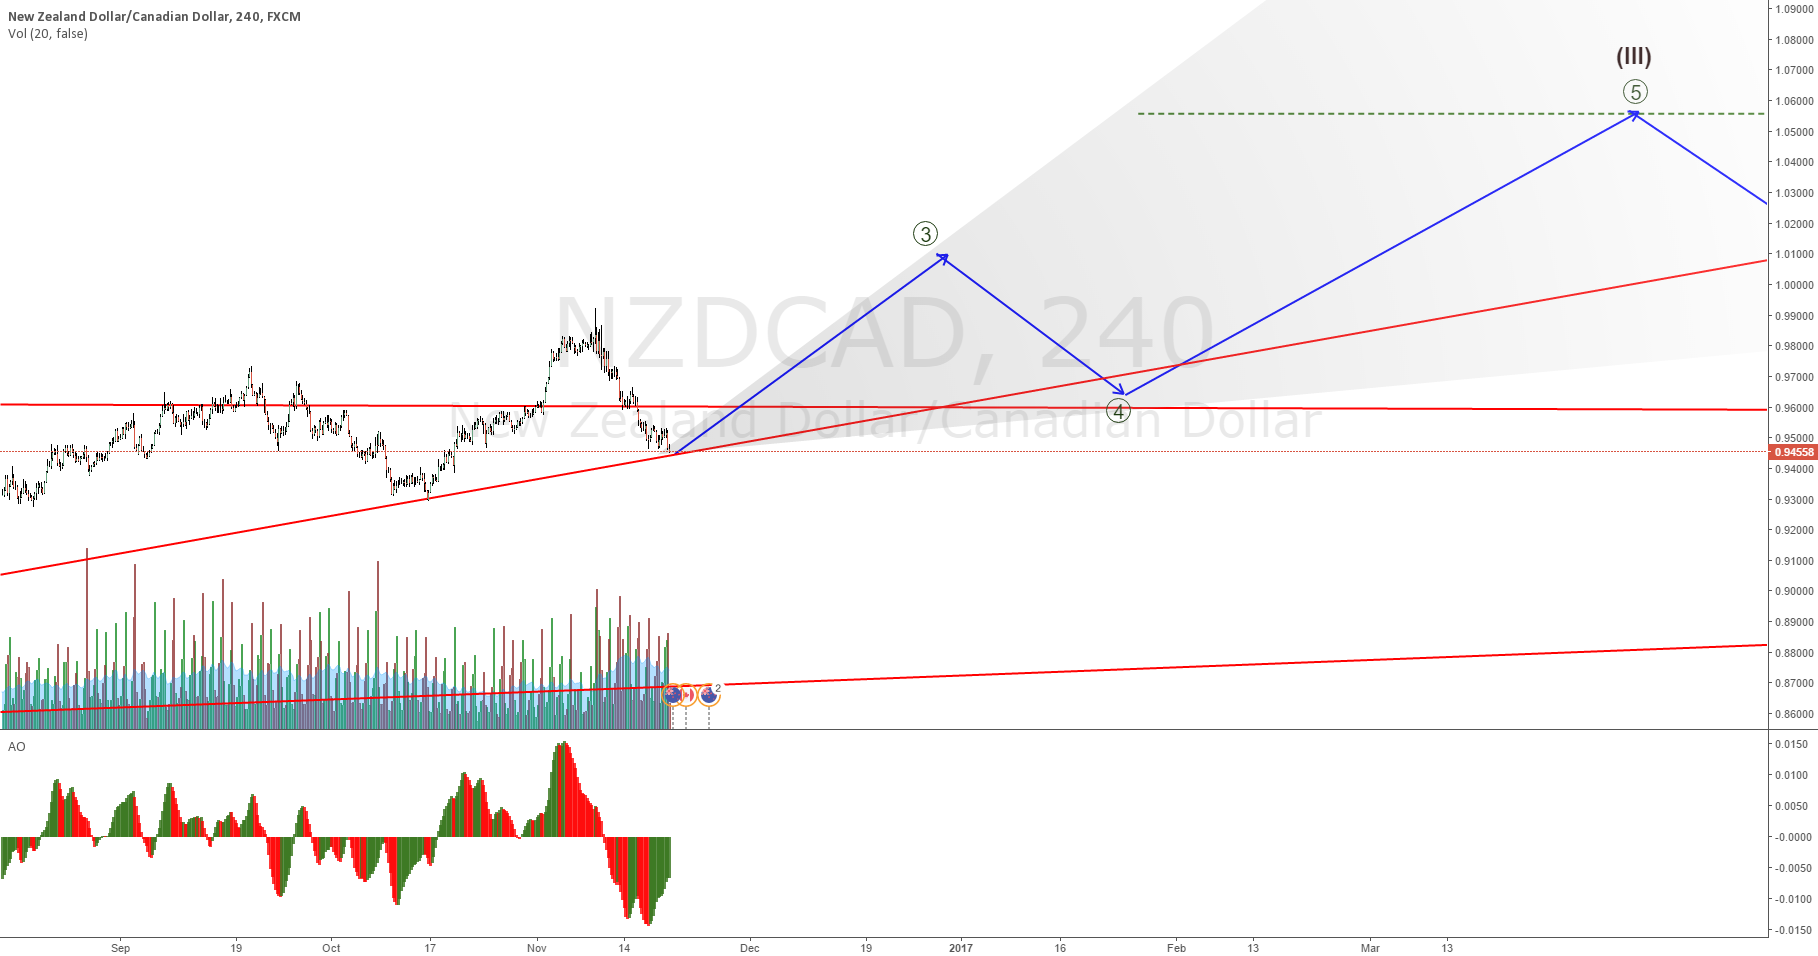 NZDCAD correction may be ending